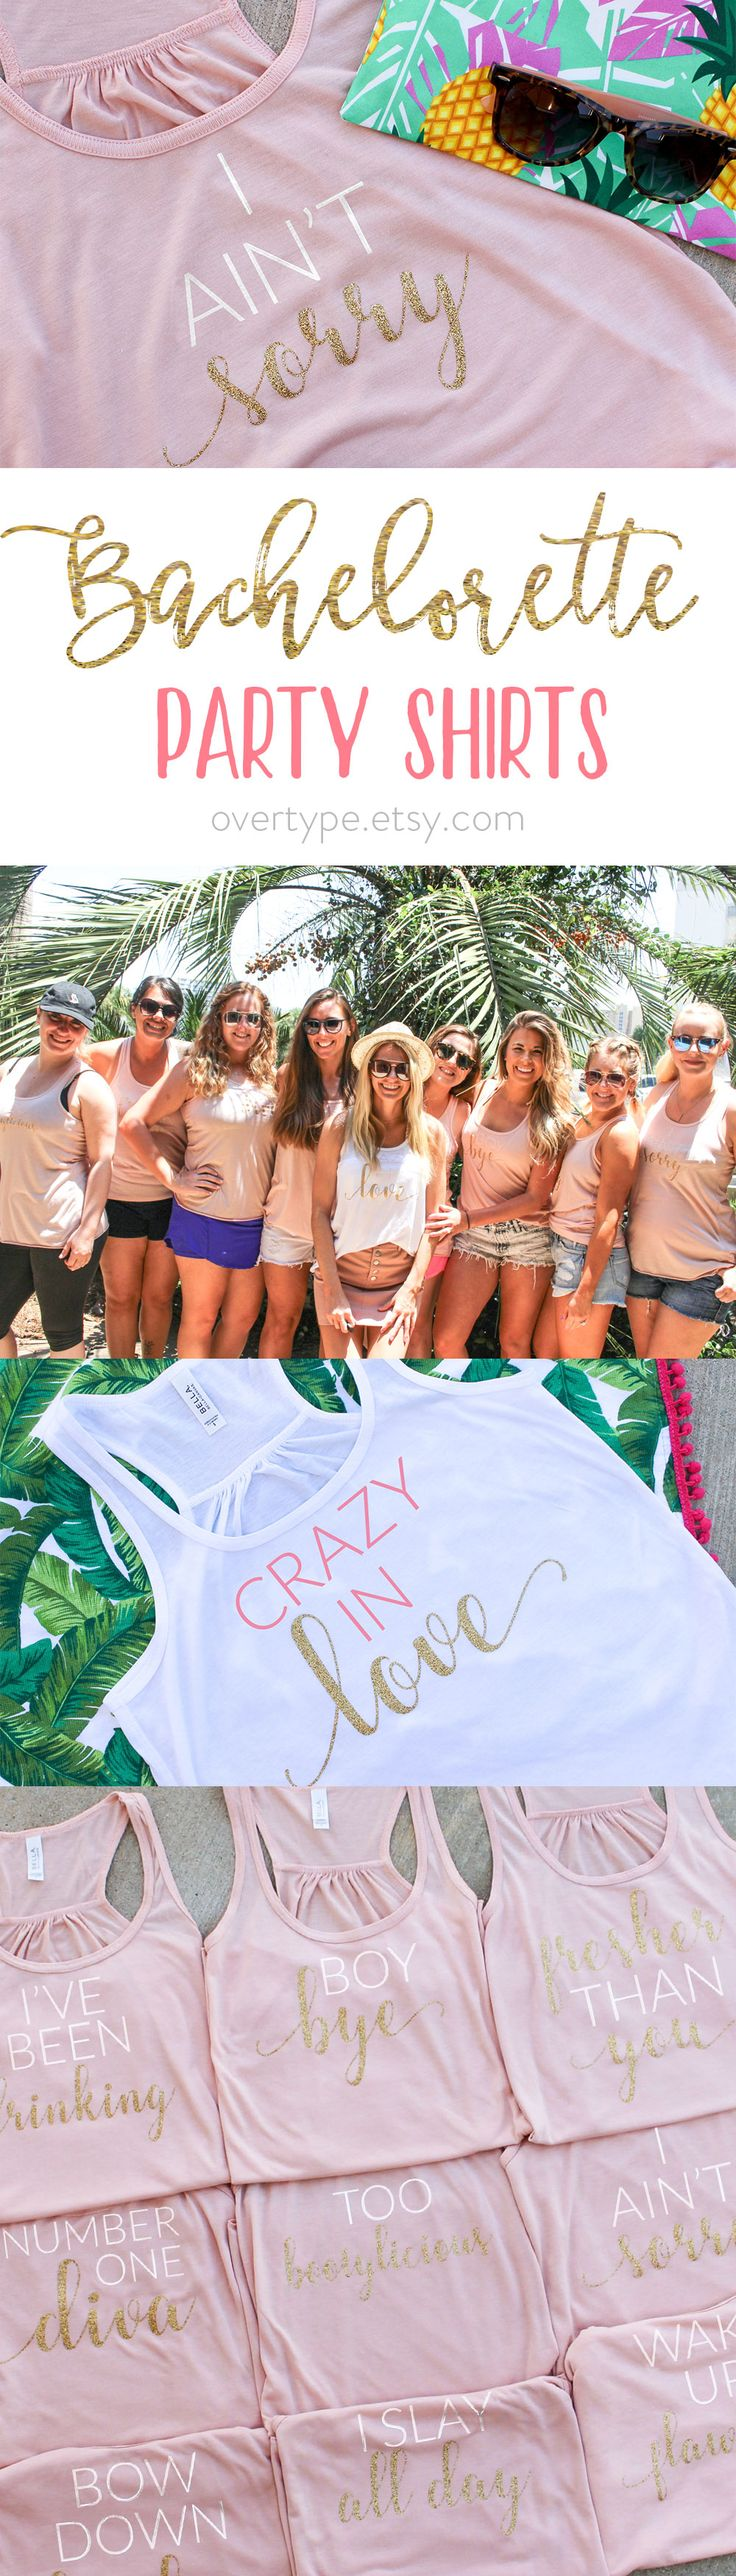 Bachelorette Shirts, Bachelorette Party, Bachelorette Tanks, Hen Party Shirts, Bachelorette party favors, bridal party tanks, bridal gifts   Bachelorette party shirts with sassy sayings. Bachelorette tank tops are decorated with white and gold glitter. White Bachelorette shirts for the Bride have pink writing and gold glitter writing.